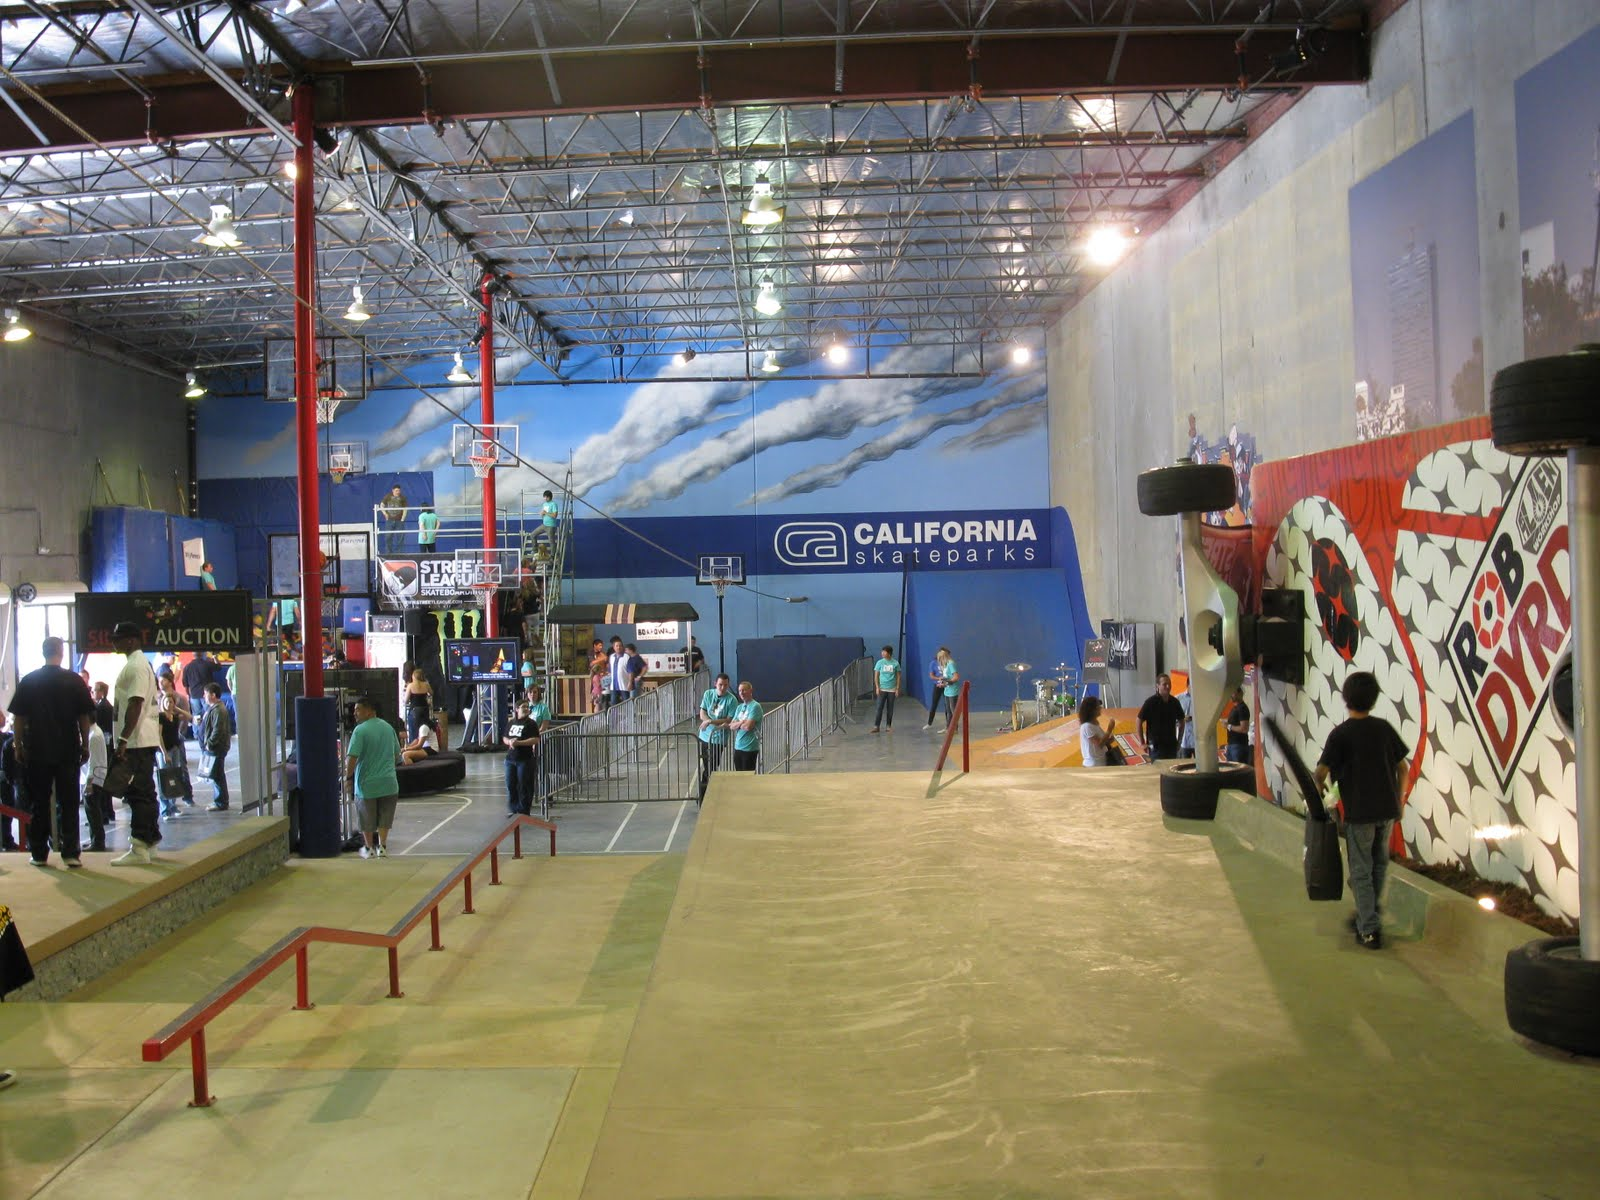 8abcf54acf After that, Ryan Sheckler shows up and Rob shows him how he changed up the  factory this season. I thought that was a good way to show the viewers the  ...